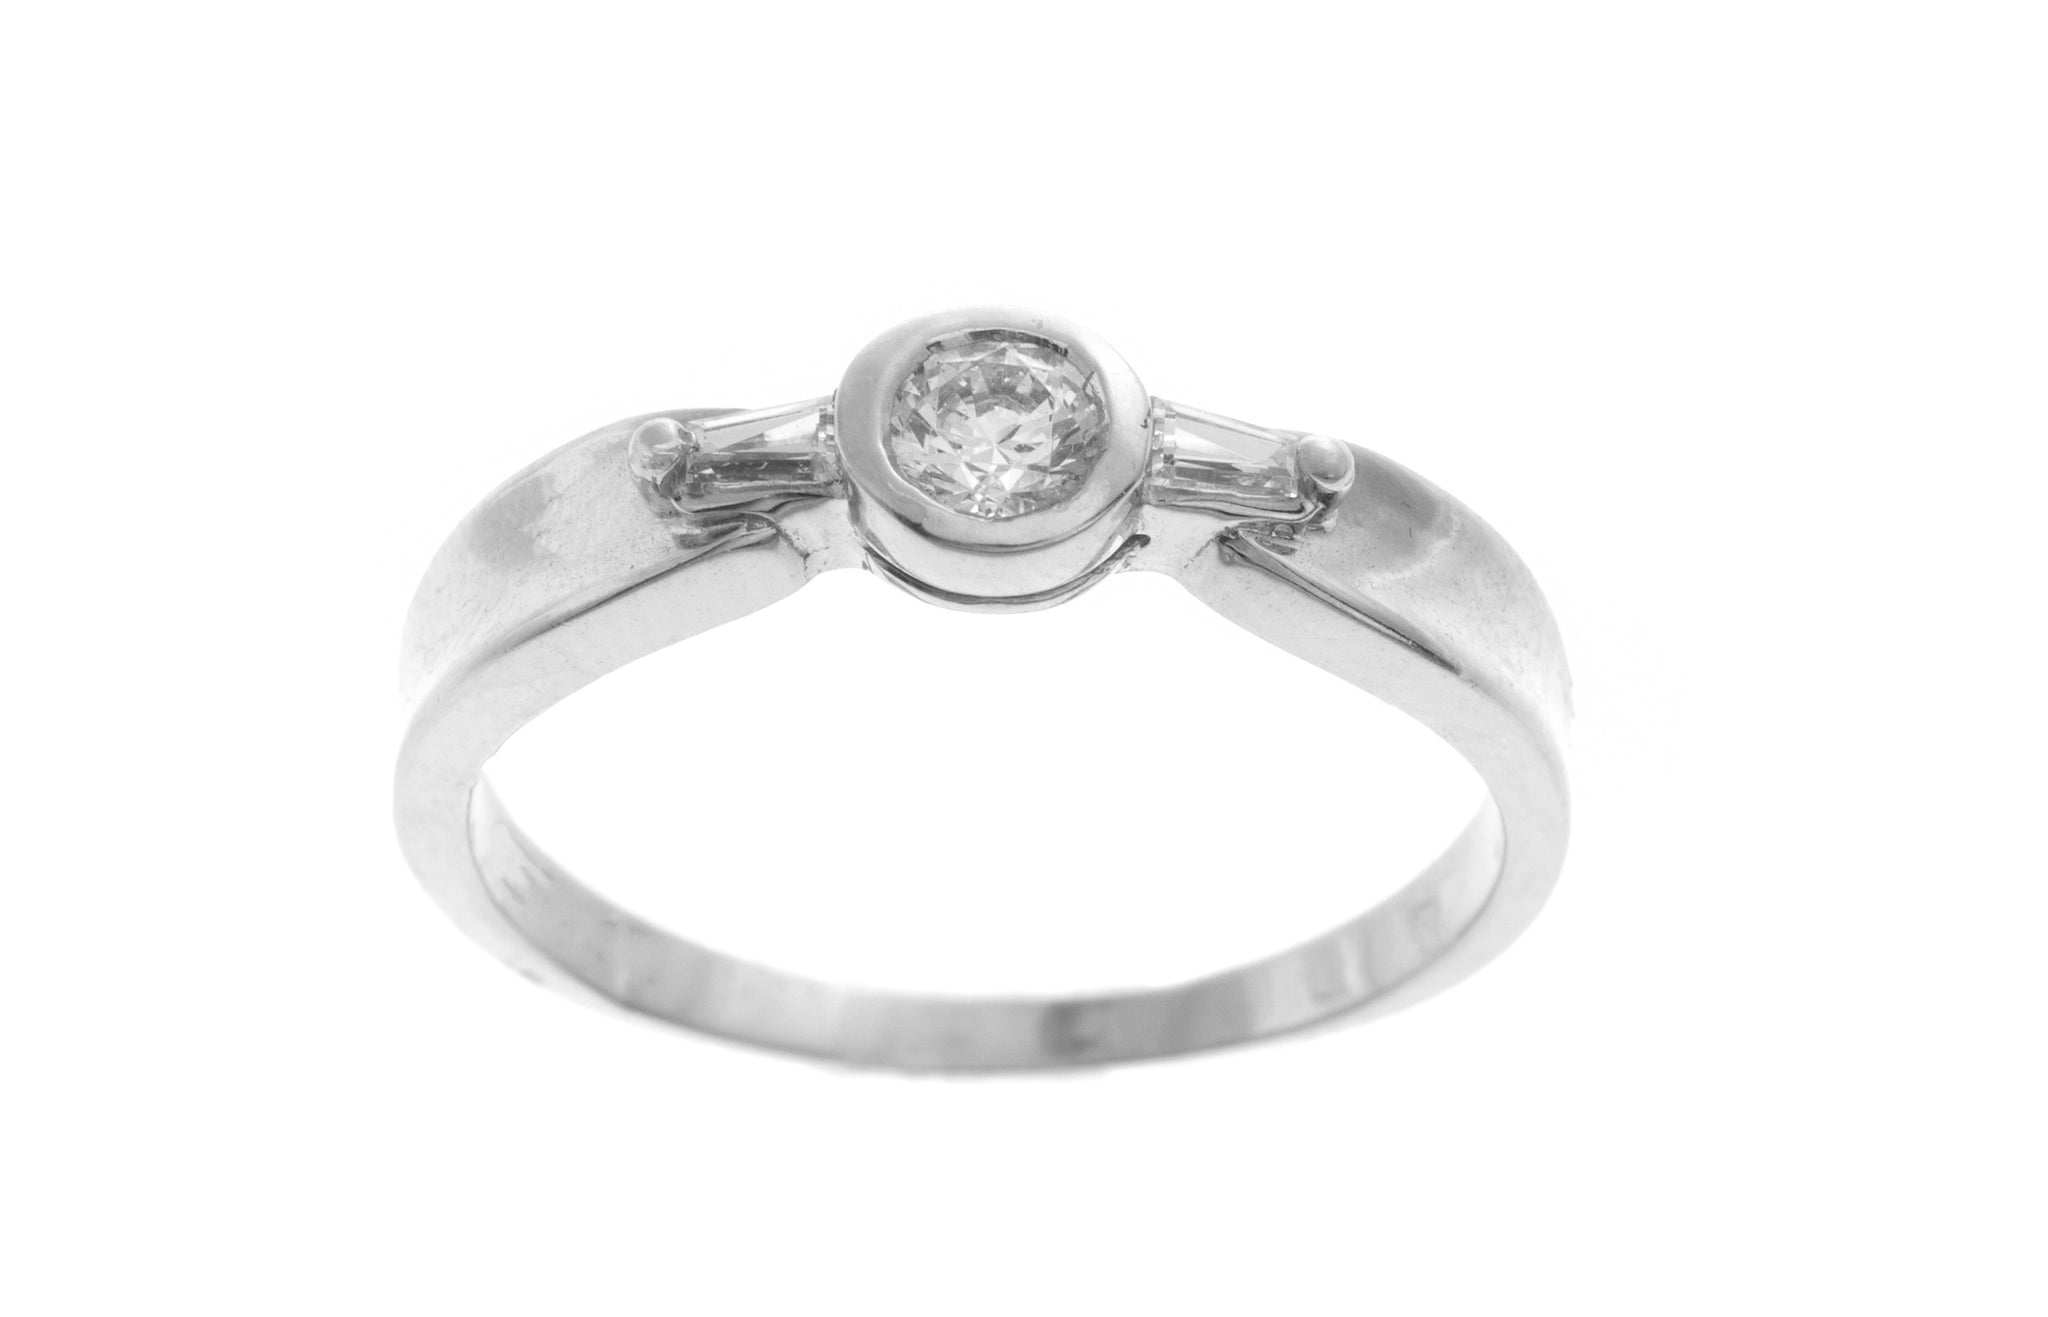 18ct White Gold Cubic Zirconia Dress Ring (2.8g) LR-2535